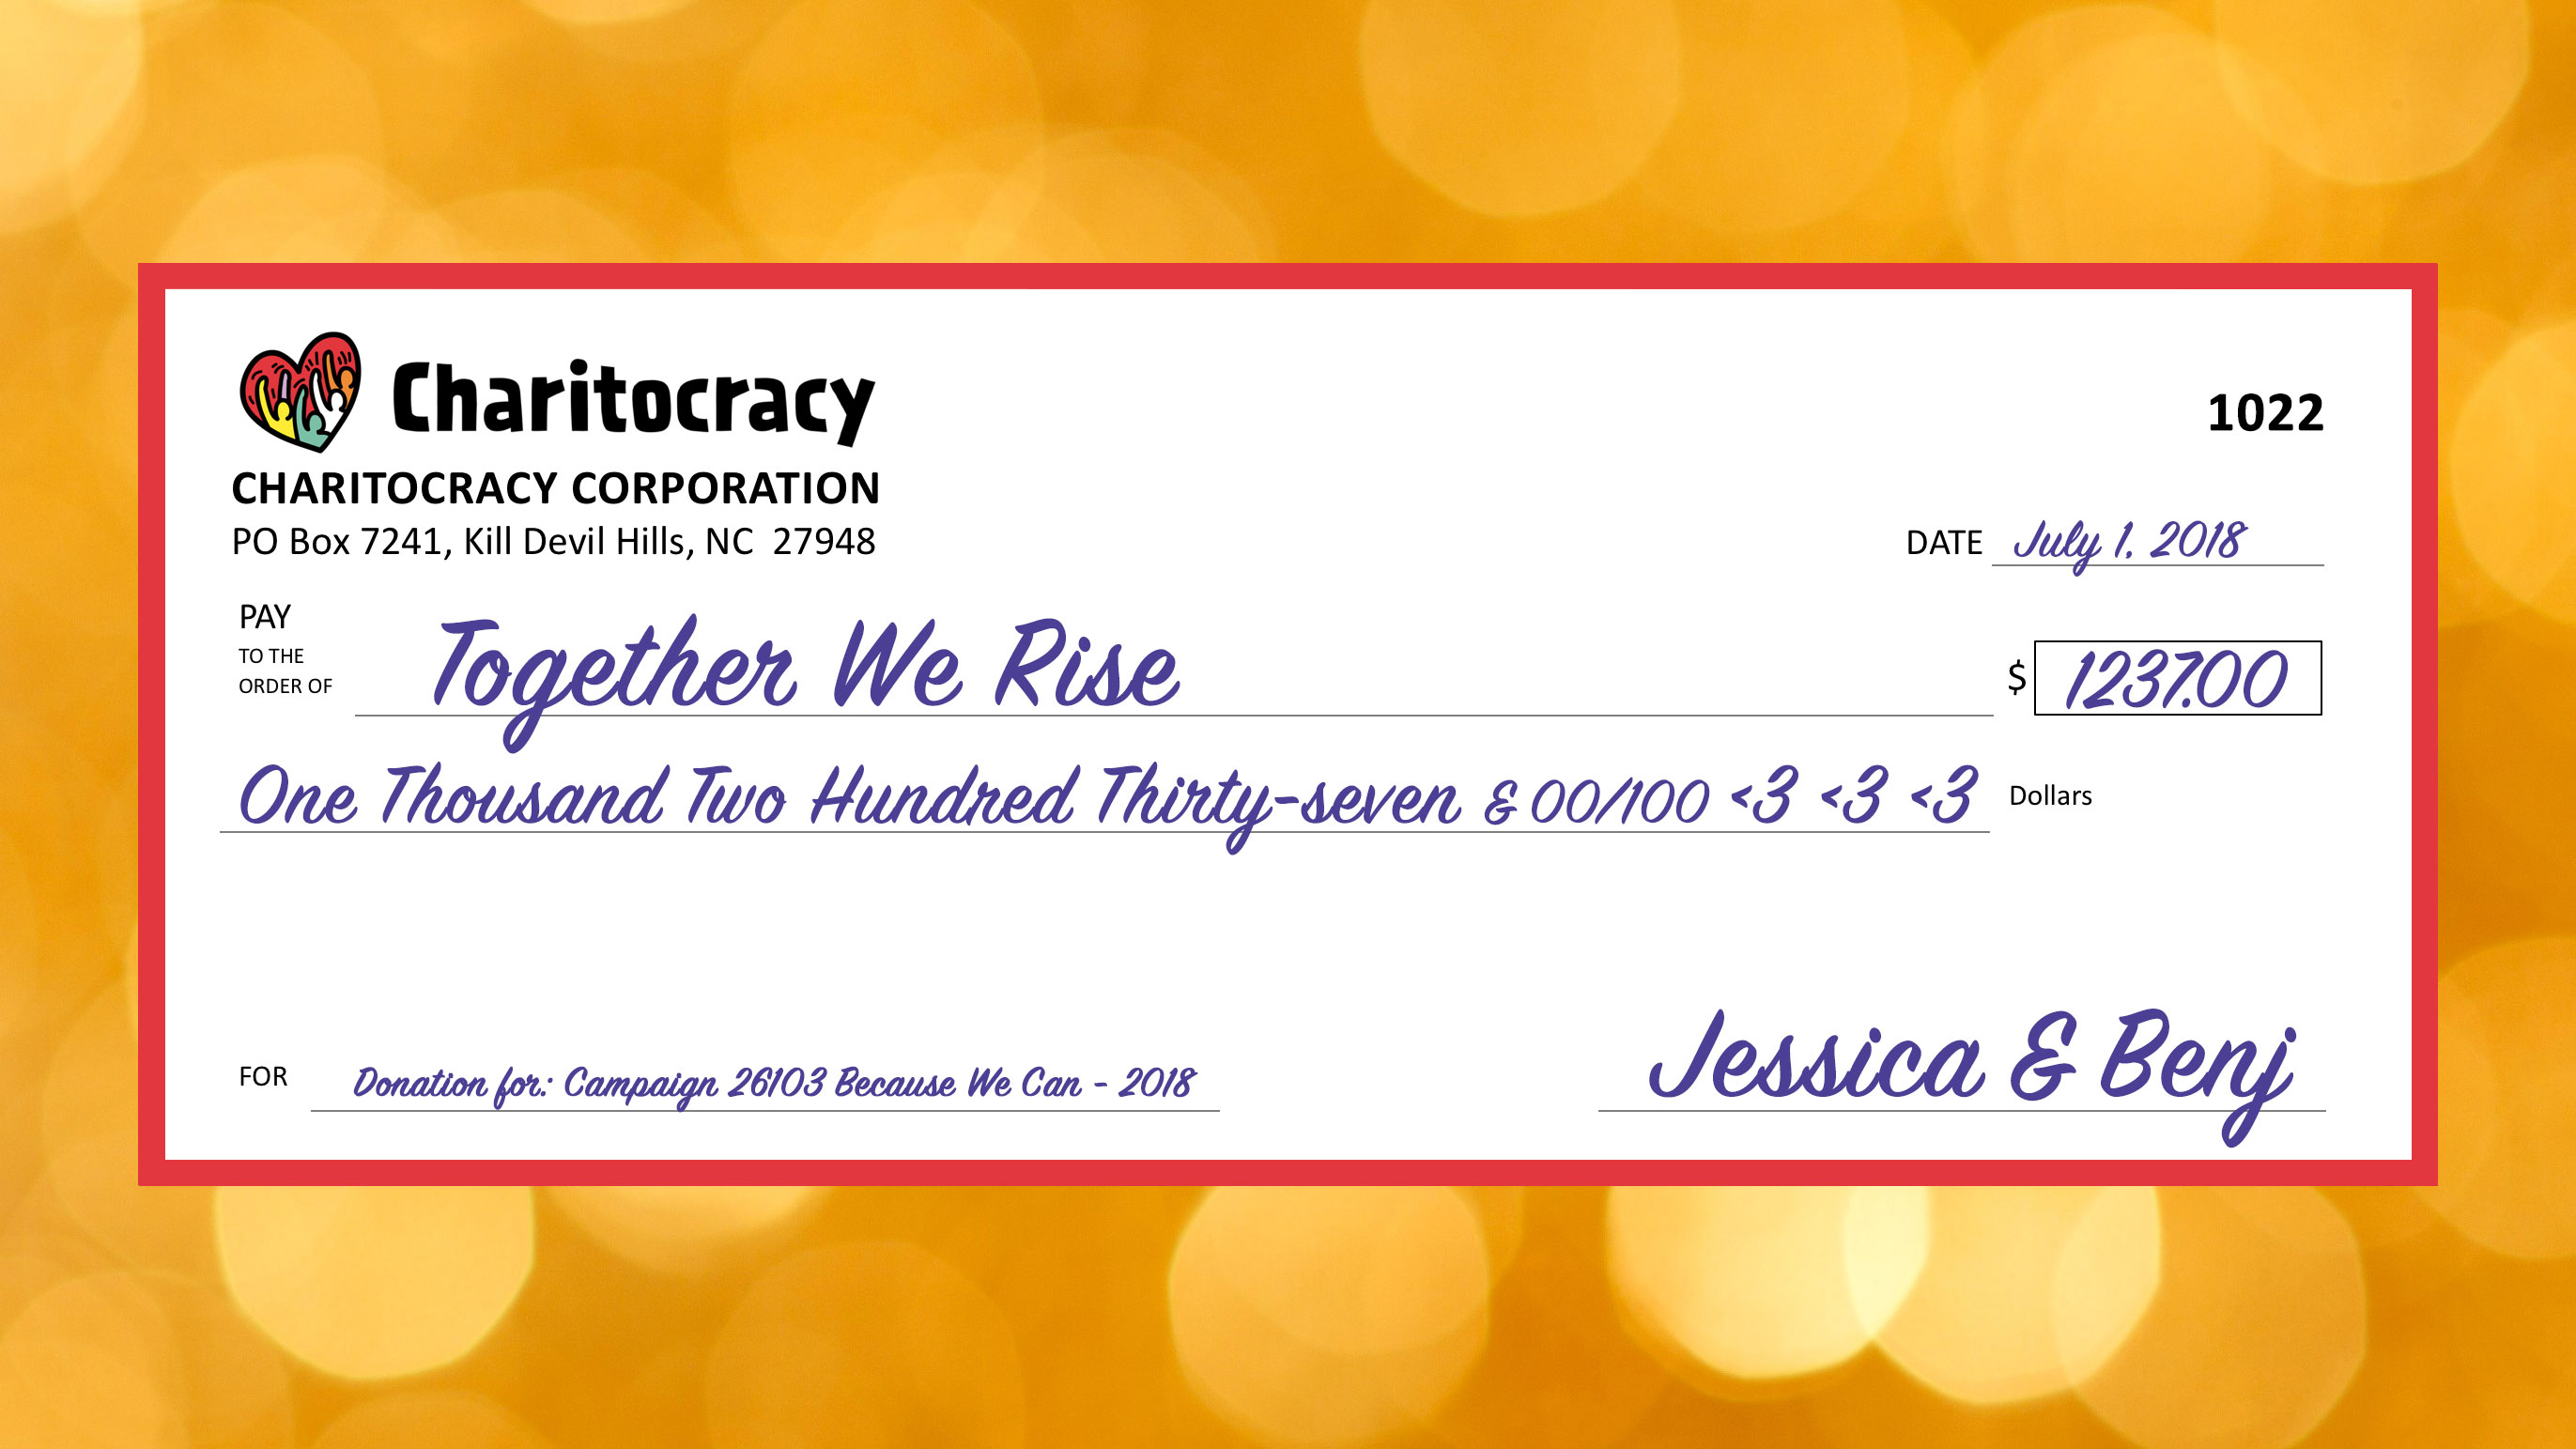 Charitocracy's 22nd check: to Together We Rise for $1237